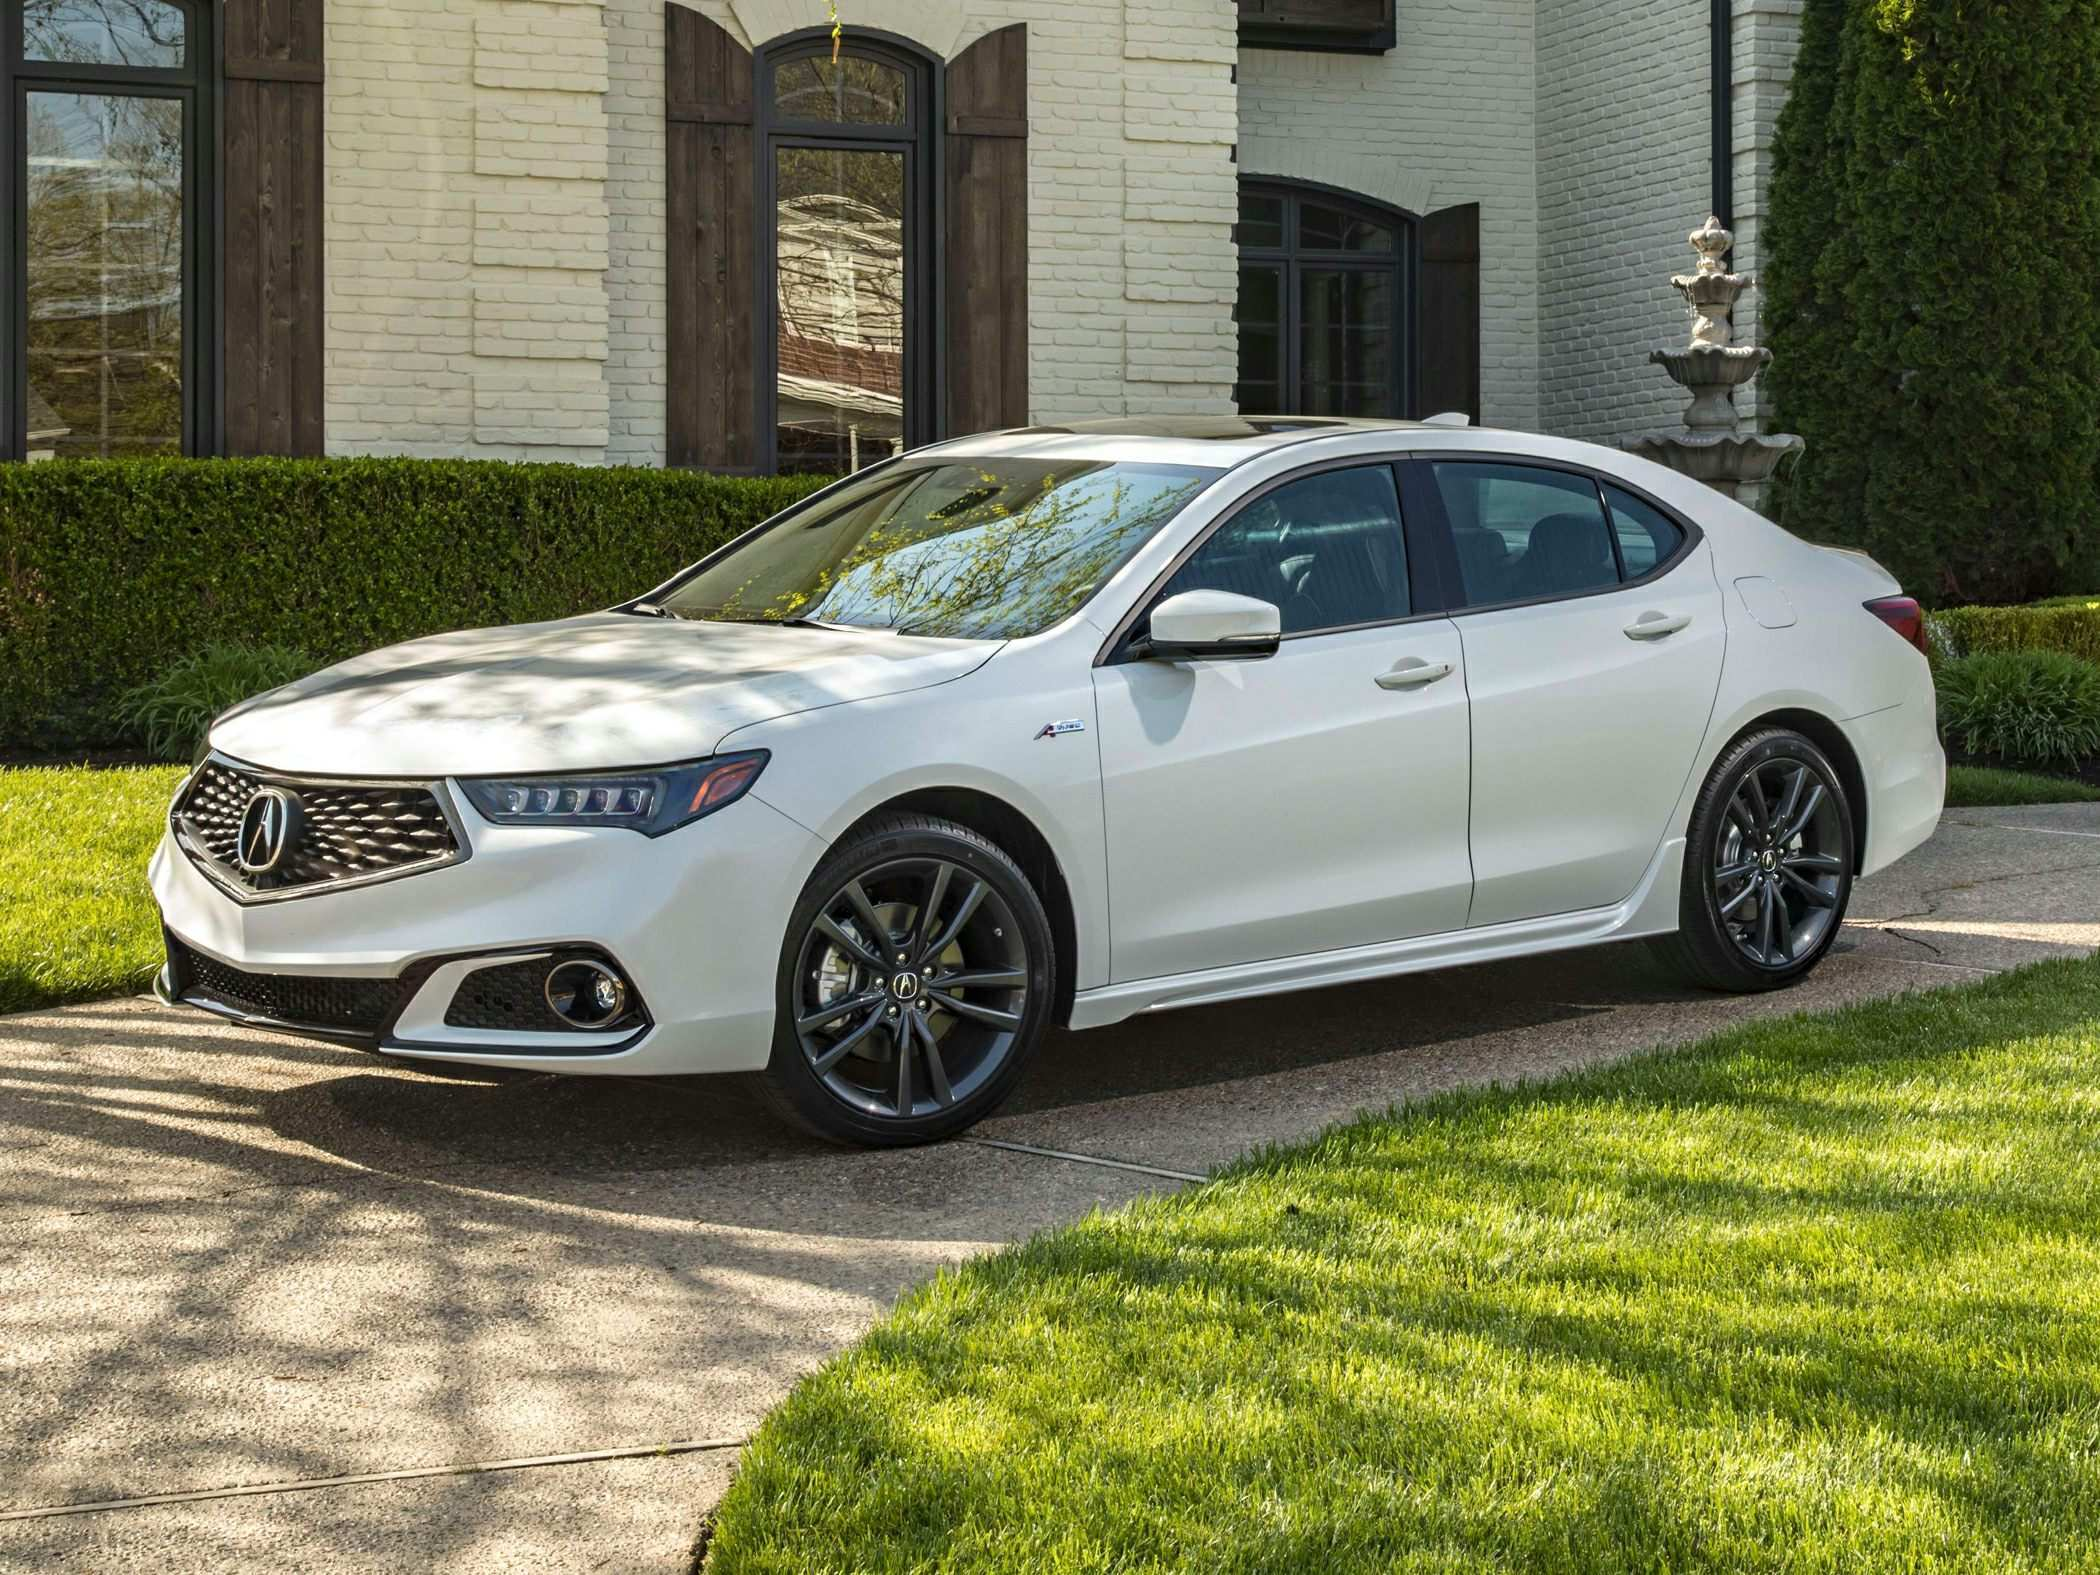 32 Best Review Acura Tlx 2020 Price Research New for Acura Tlx 2020 Price